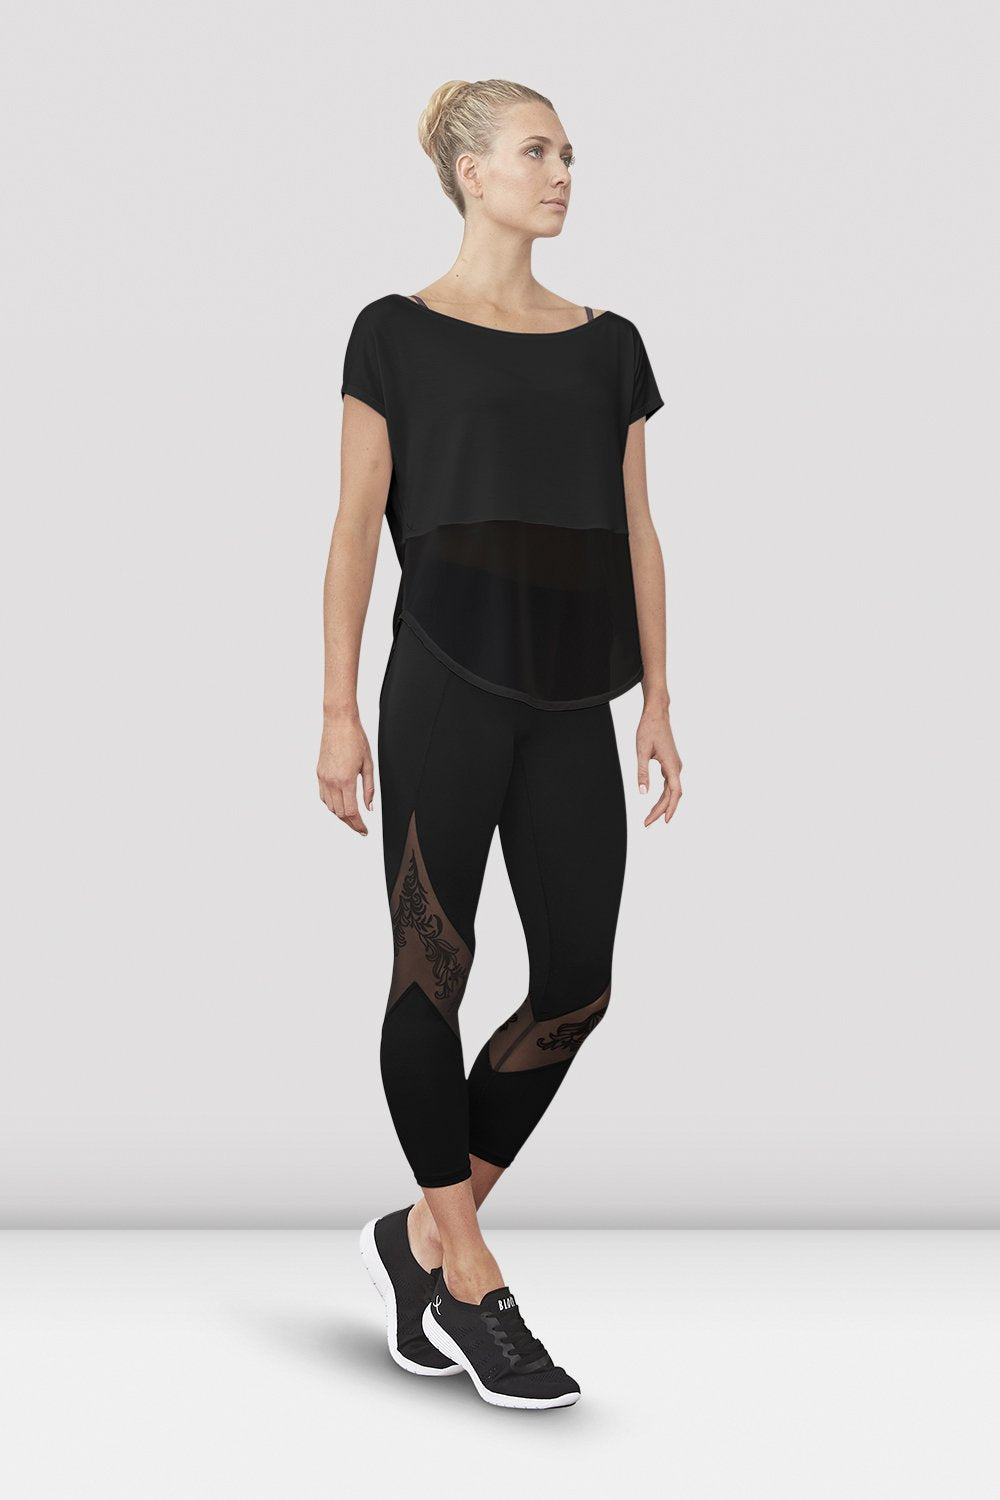 Black Bloch Ladies Saori Mesh Panel Legging on female model left level beveled facing downstage left